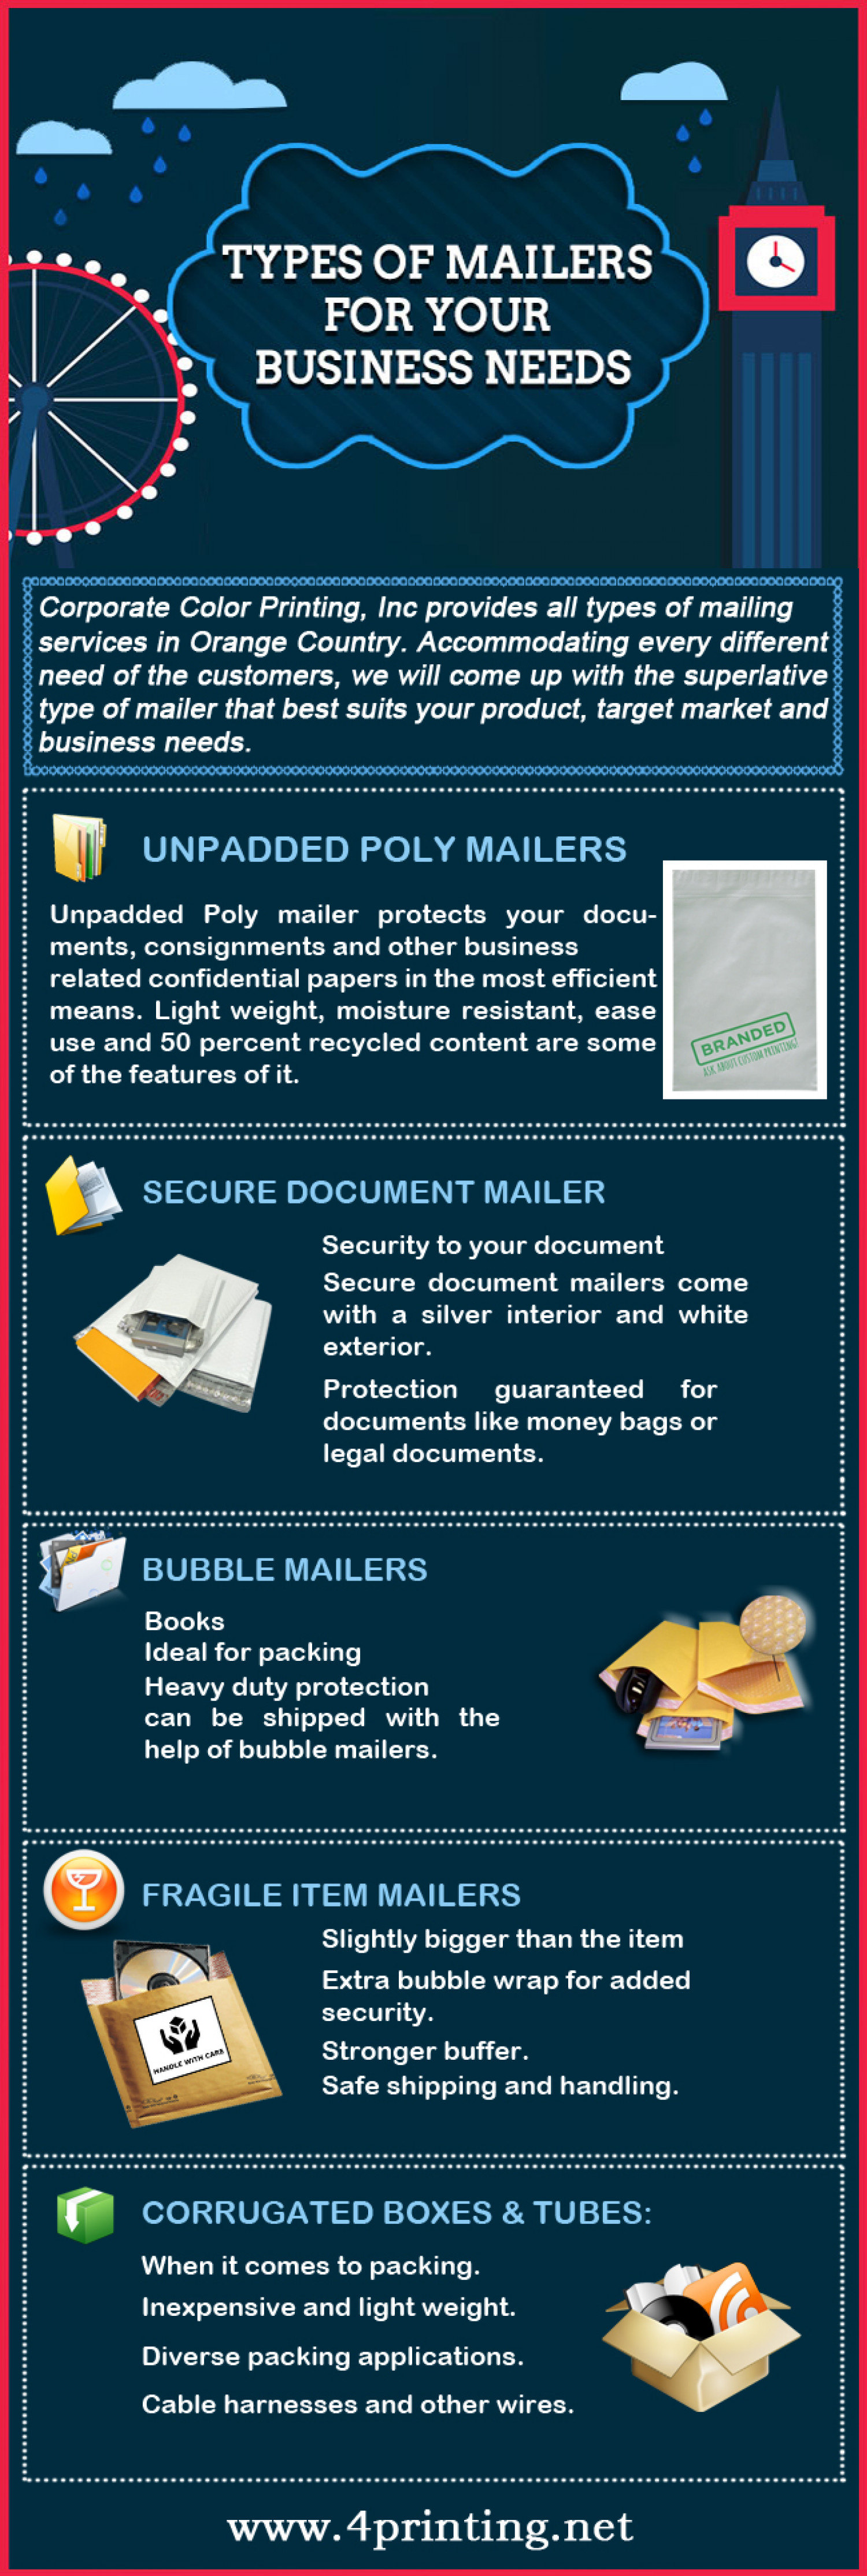 Types of Mailers for Your Business Needs Infographic